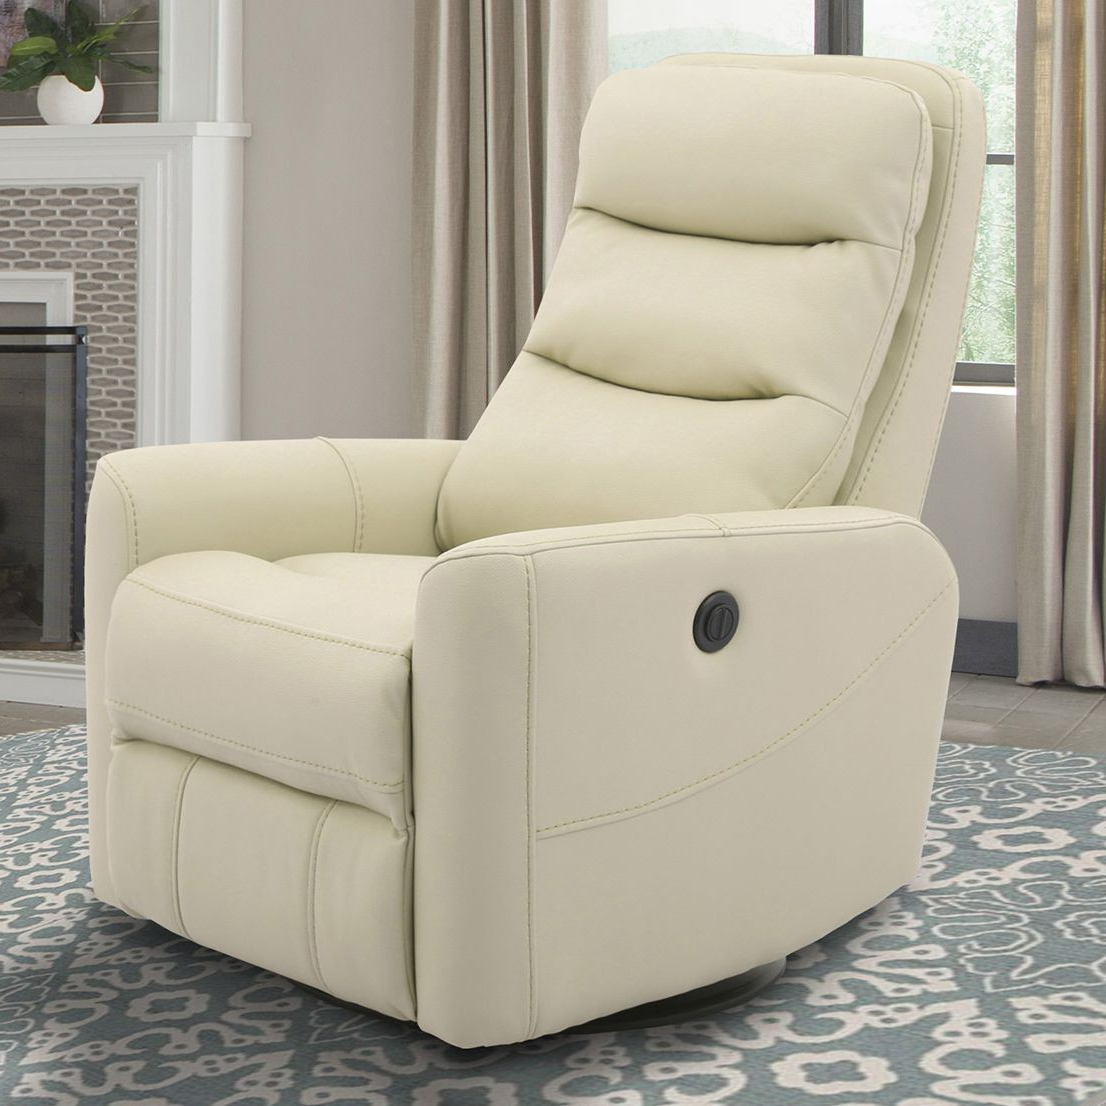 2018 Parker Living Hercules Anywhere Power Swivel Recliner In Oyster Pertaining To Hercules Oyster Swivel Glider Recliners (View 1 of 20)